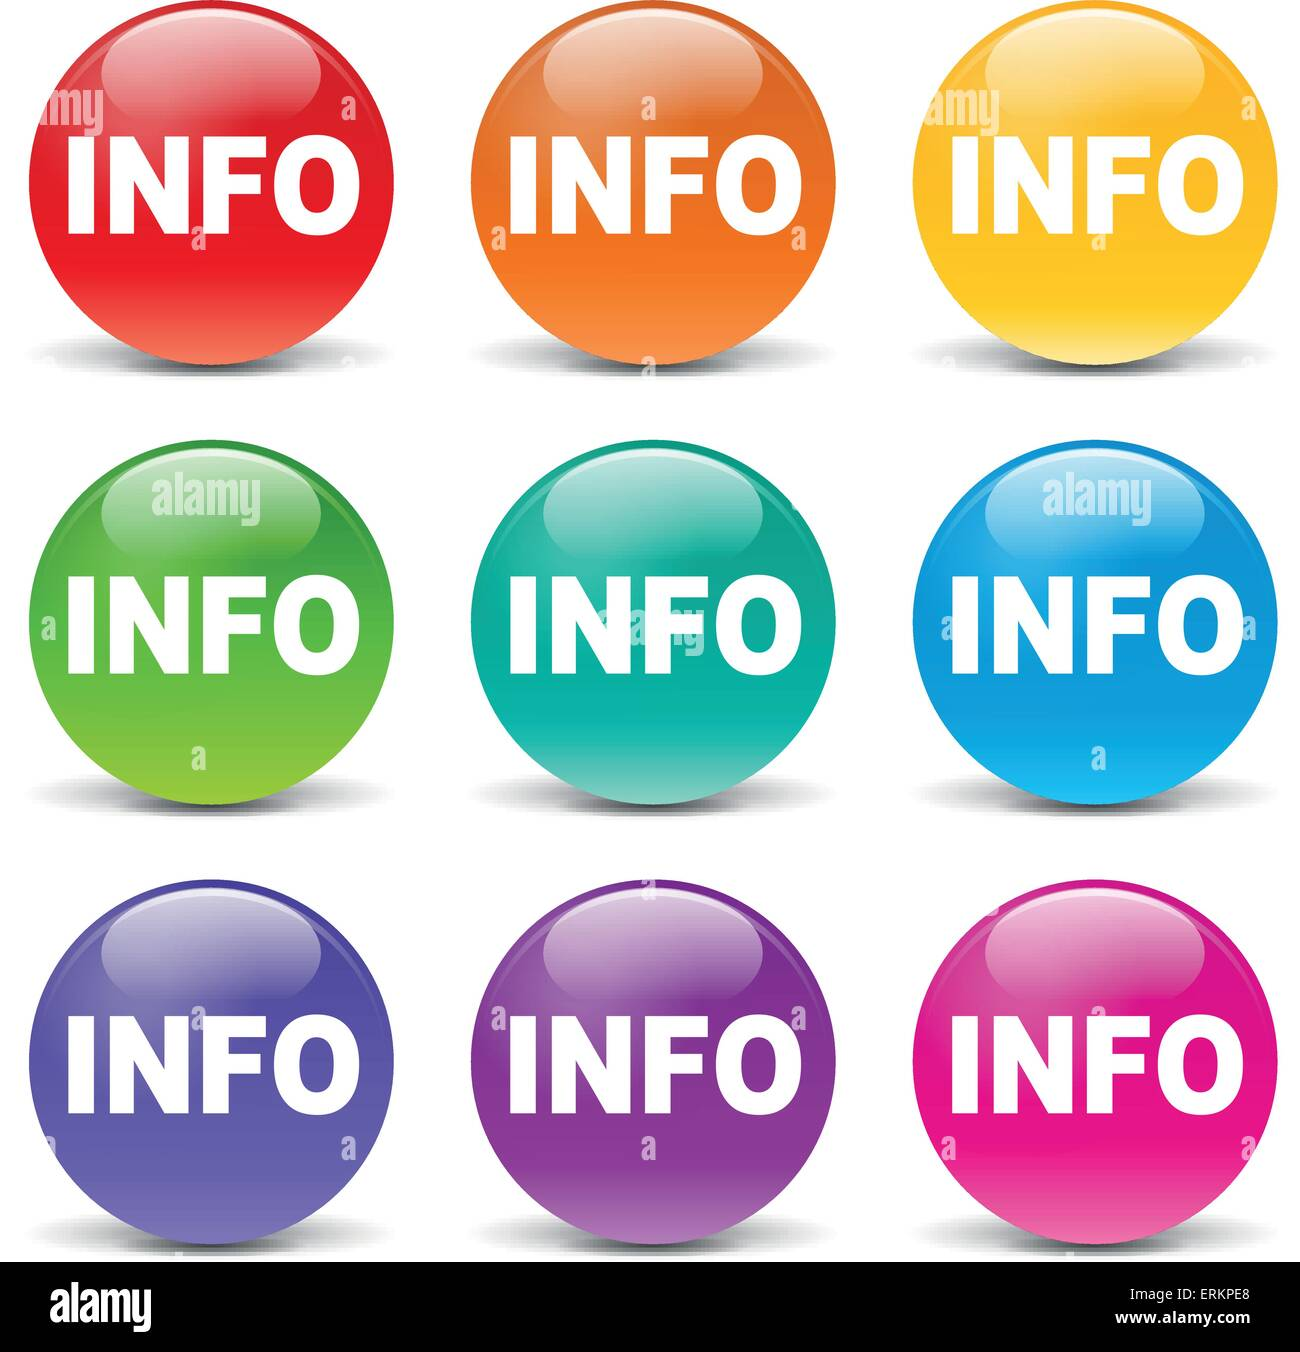 Vector illustration of info colors icons on white background - Stock Image